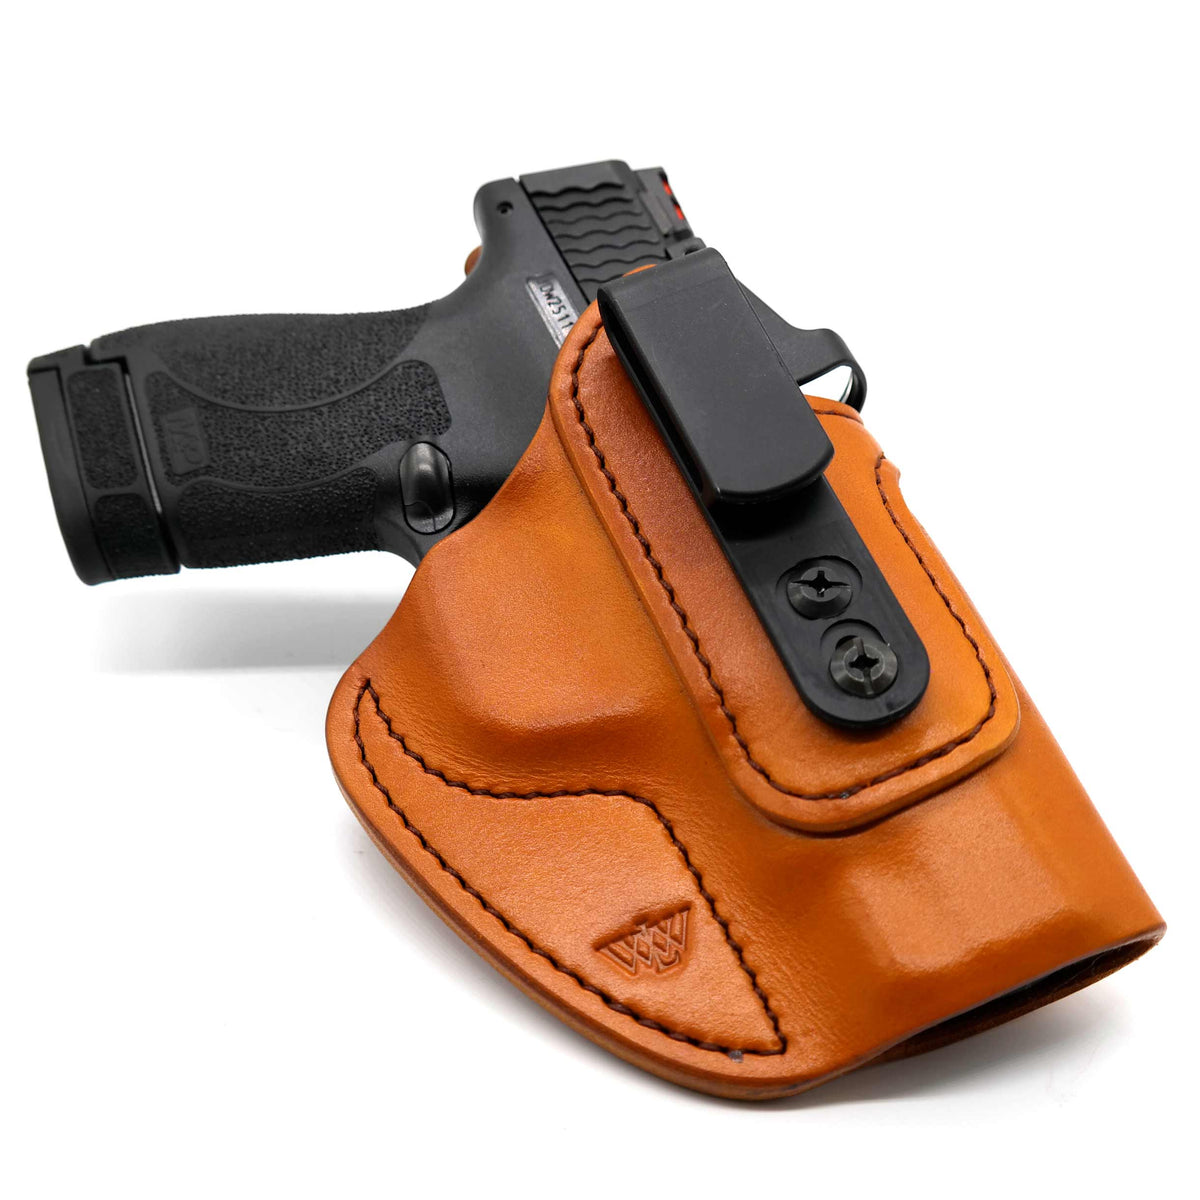 Cruiser® ROR Reflex-Optics-Ready IWB Clip Holster